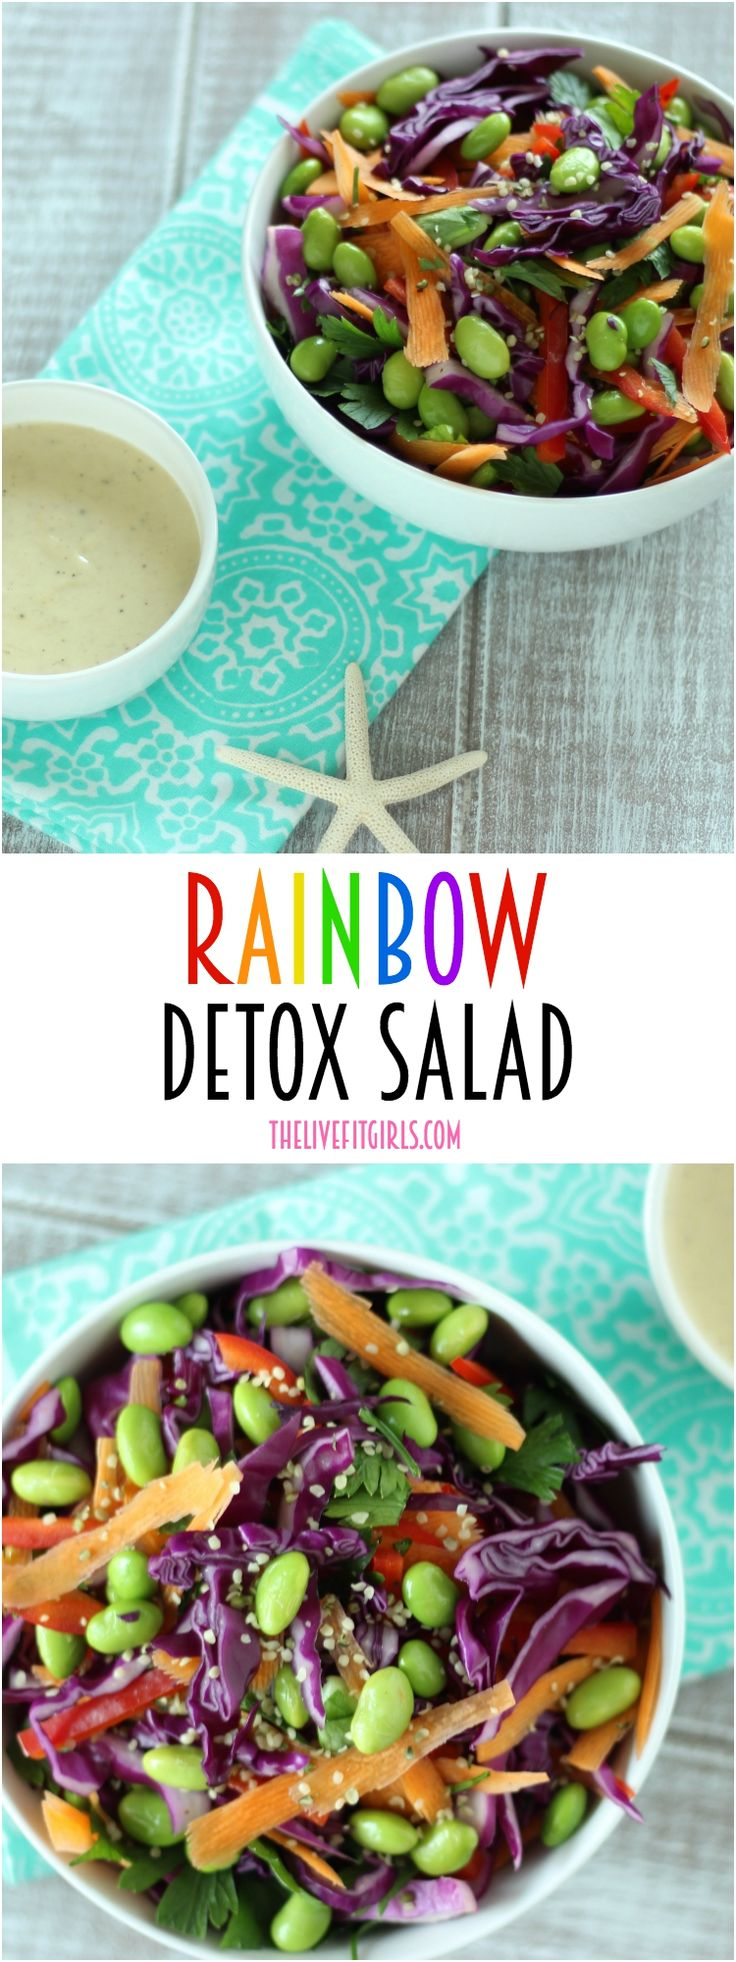 Need a little help getting back on track? This detox salad is made with a rainbow of raw veggies and sweet Tahini Dressing you will go crazy for!